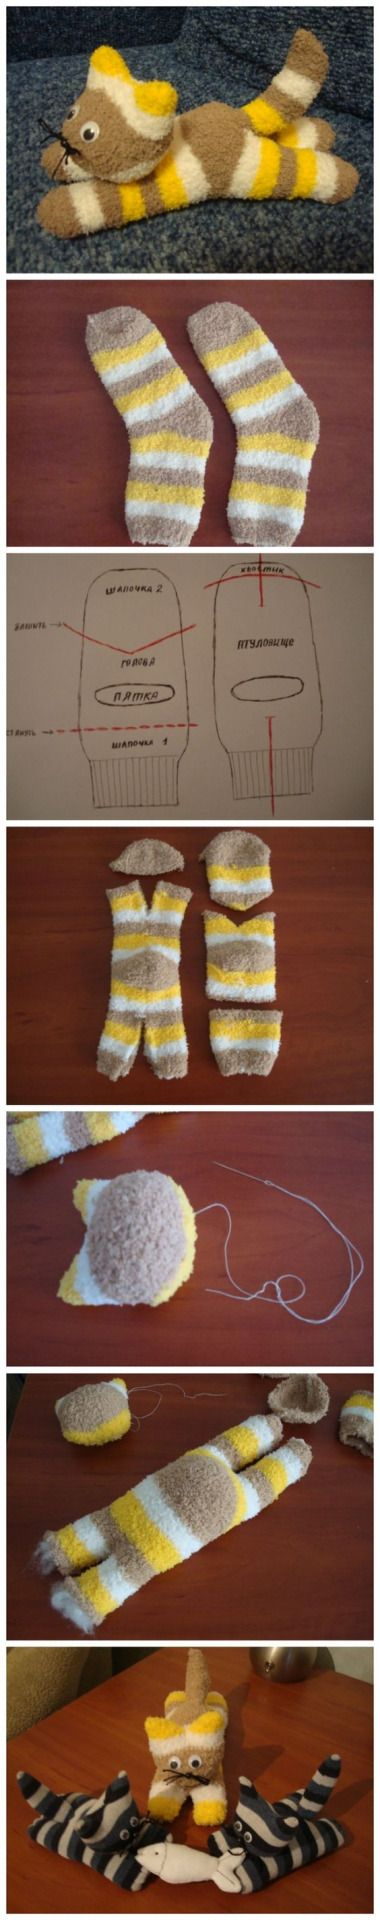 DIY Cute Sock Kitten Sock animals are cute and very fun to make. Most important, you don't need to have special skills to create a sock toy, as it is a very easy project. To complete your sock animal collection, here's a cool tutorial on how to make...                                                                                                                                                                                 More